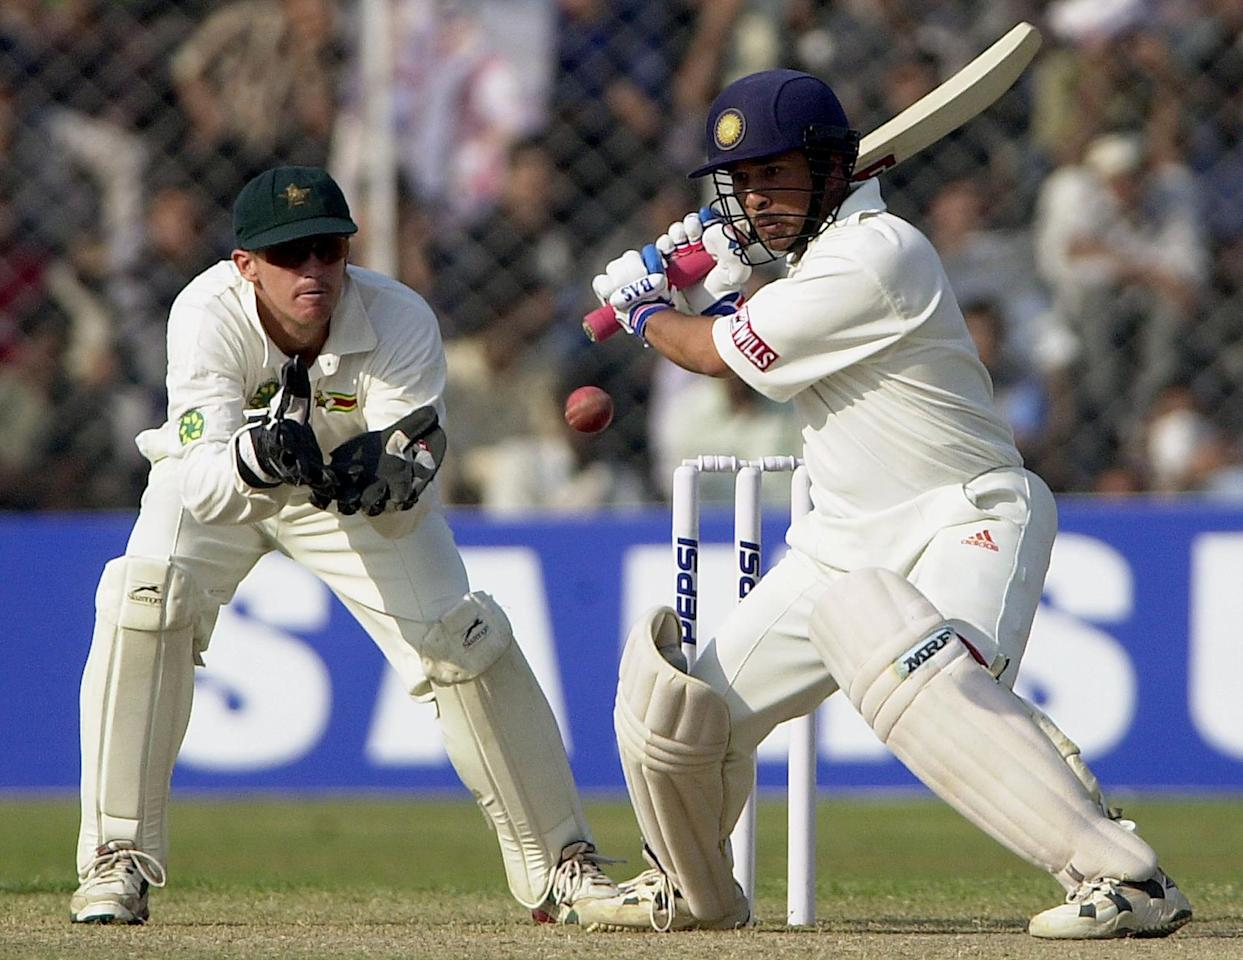 Indian ace batsman Sachin Tendulkar (R) about to whip a delivery from Zimbabwean spinner Brian Murphy (not in the picture) to the fence as Zimbabwean wicketkeeper Andy Flower looks on during the third's days play in the first test match betwen India and Zimbabwe in New Delhi, 20 November 2000 at the  Ferozshah Kotla ground in New Delhi. India finished the day's play at 225 runs for two wickets in reply to Zimbabwe's total of 432 runs. AFP PHOTO ARKO DATTA